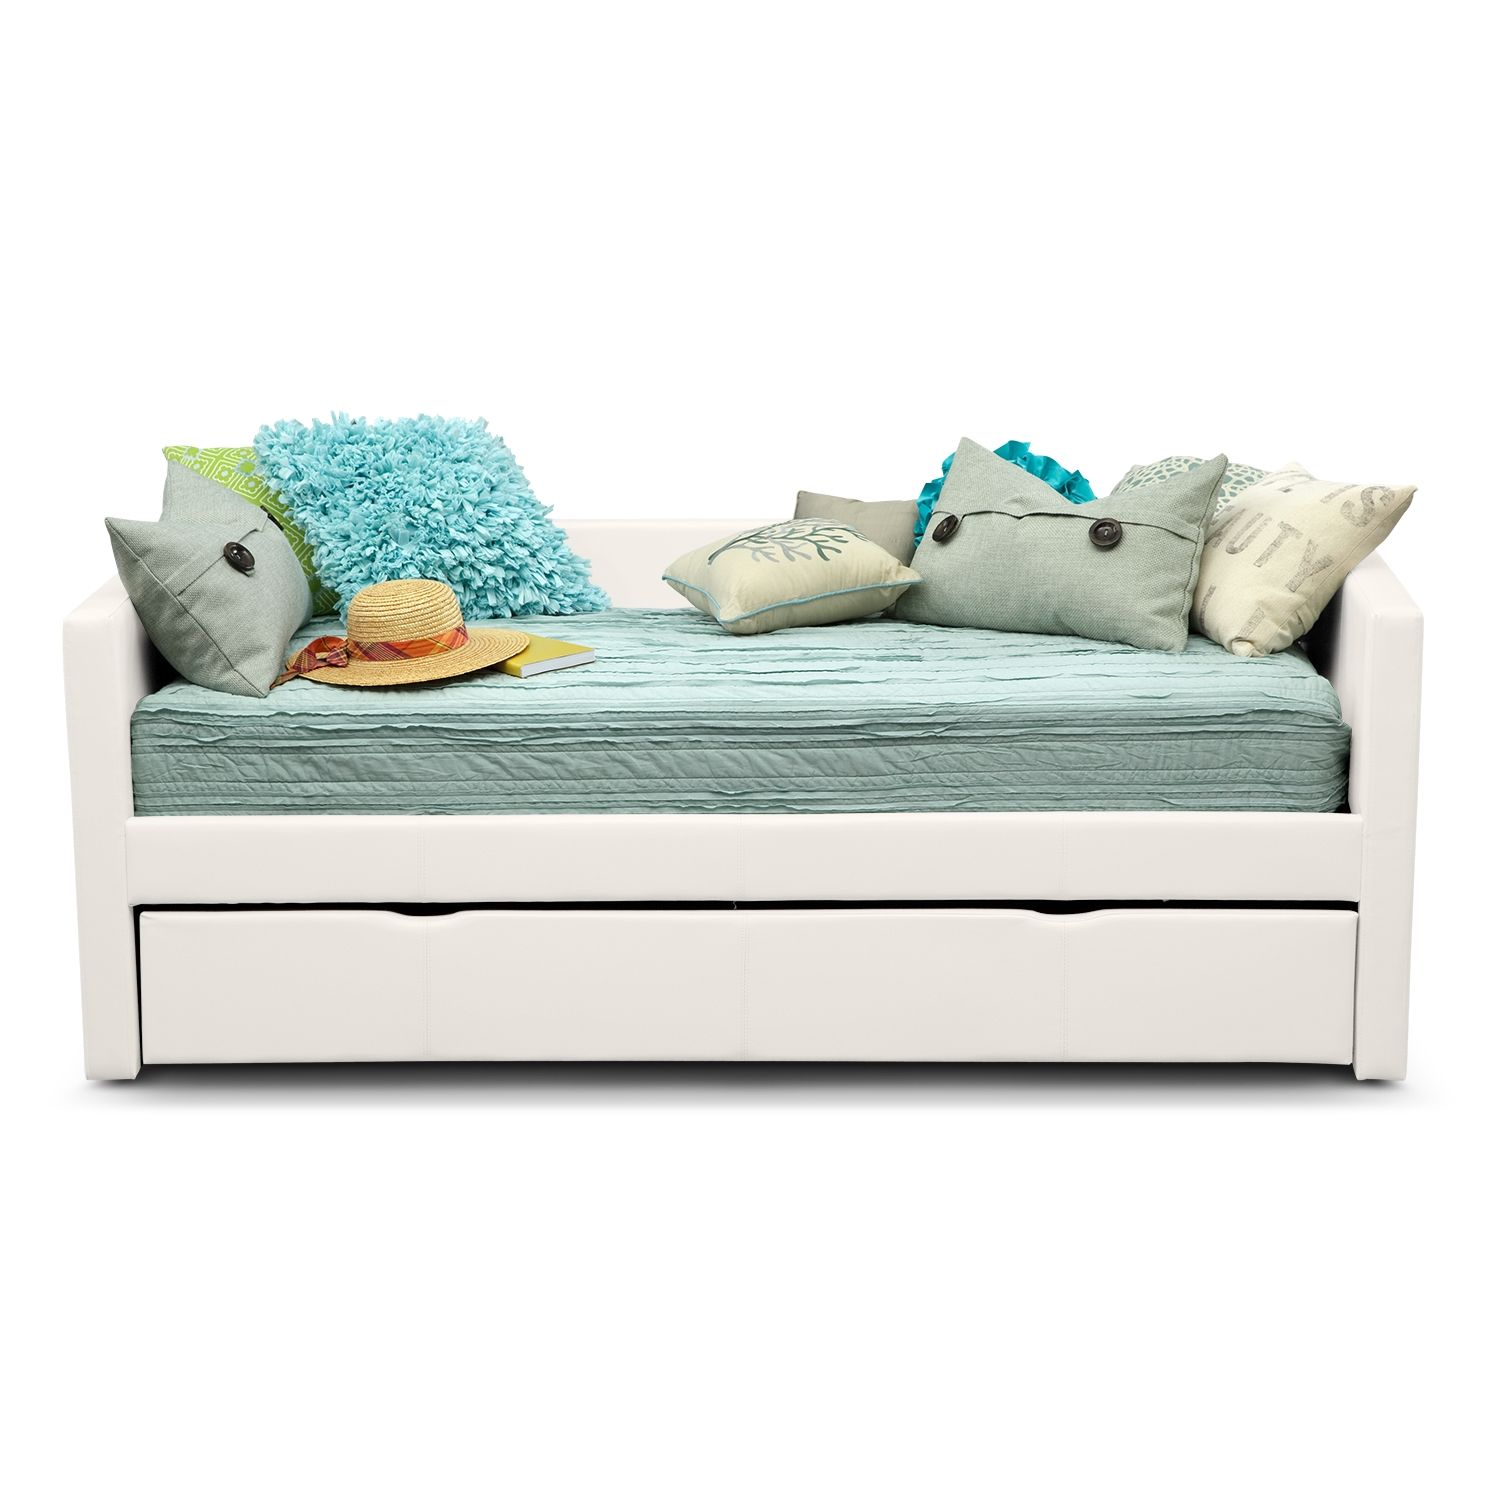 American Girl Curlicue Trundle Day Bed Includes Blue